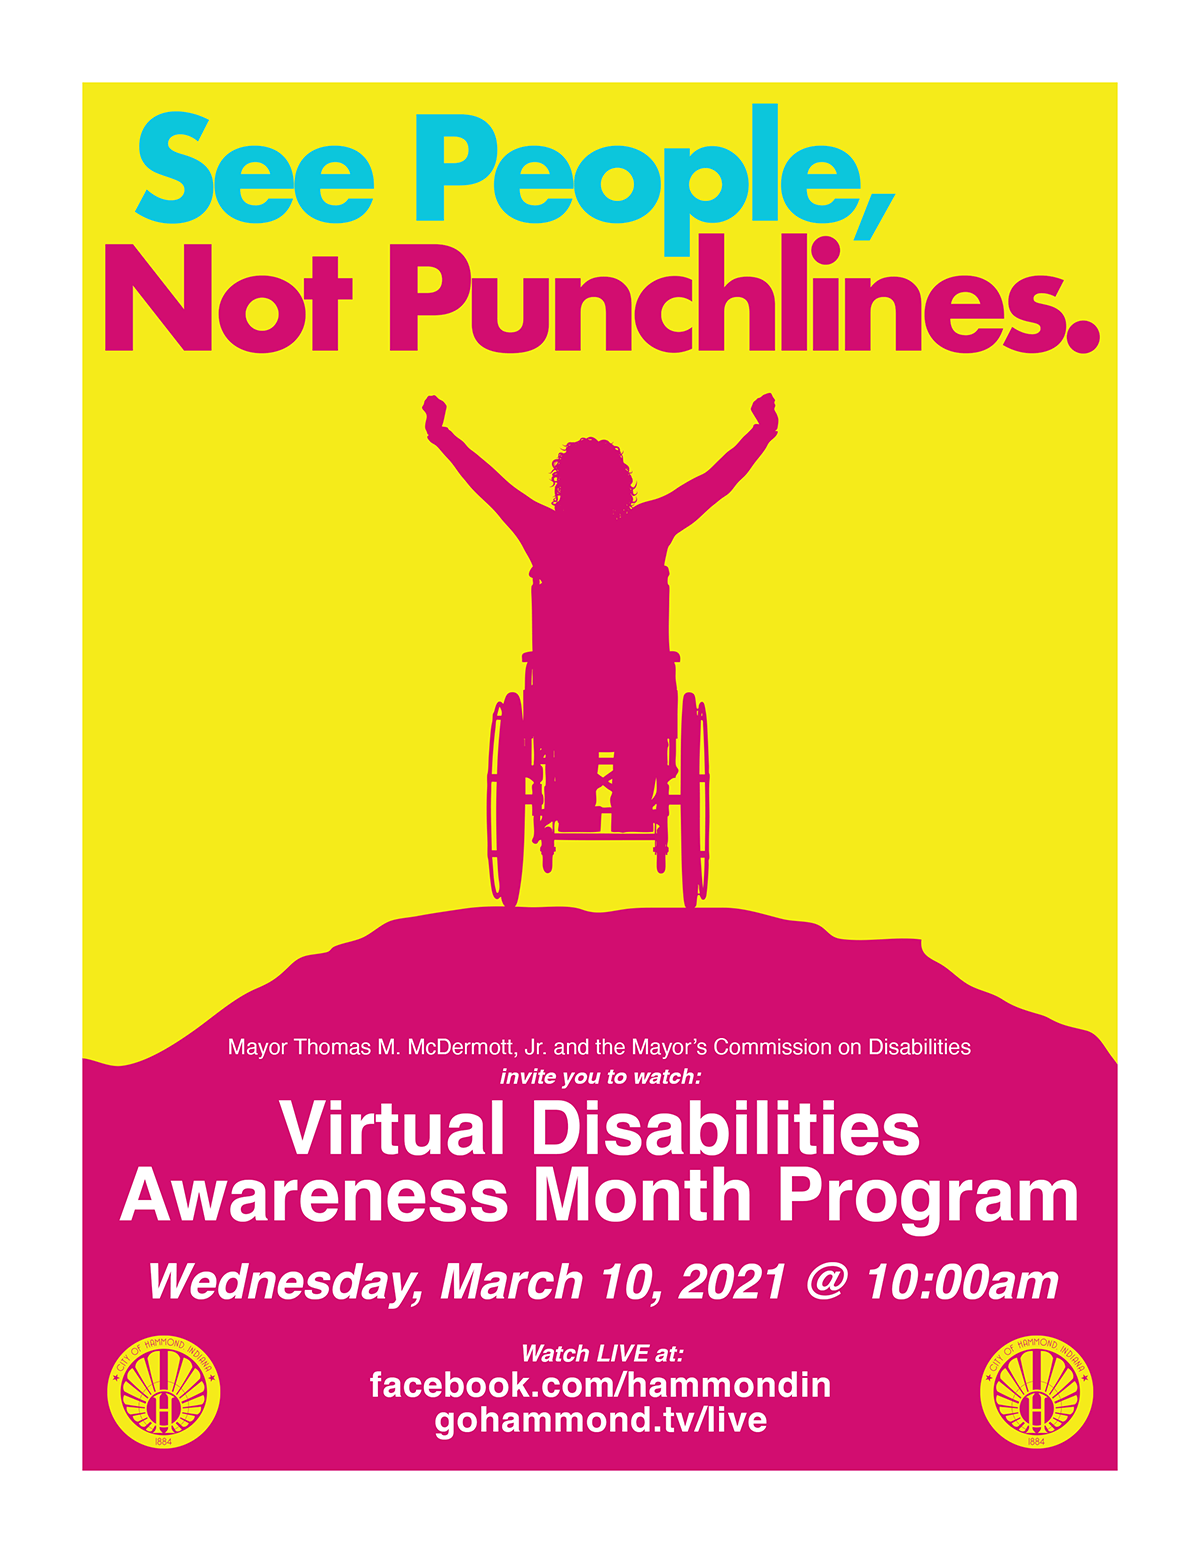 Mayor Thomas M. McDermott, Jr. and the Mayor's Commission on Disabilities invite you to watch: Virtual Disabilities Awareness Month Program Wednesday, March 10, 2021 @ 10:00am. Watch LIVE at facebook.com/hammondin or gohammond.tv/live